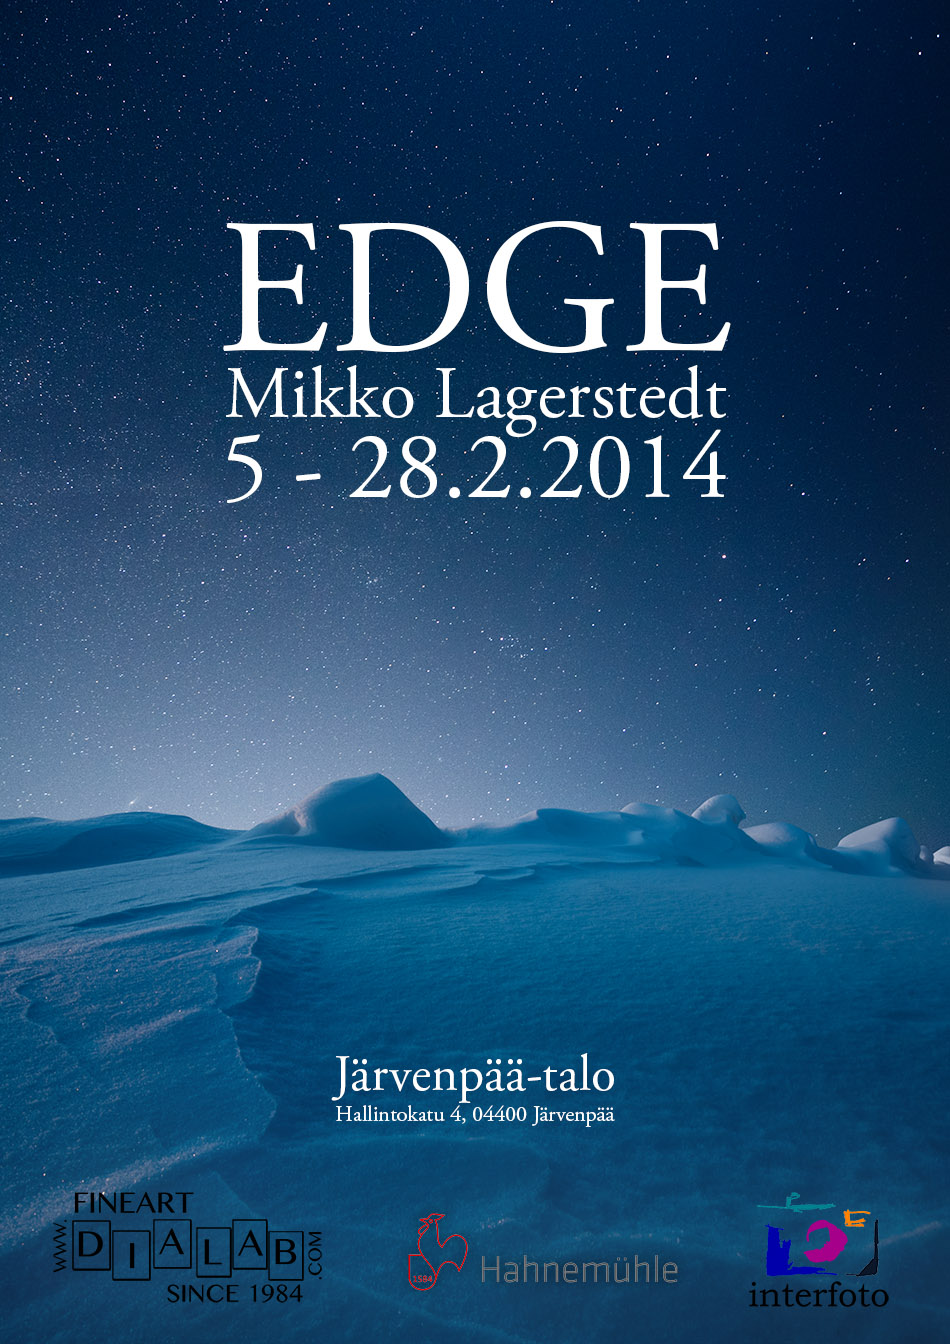 Edge-Exhibition-Mikko-Lagerstedt.jpg